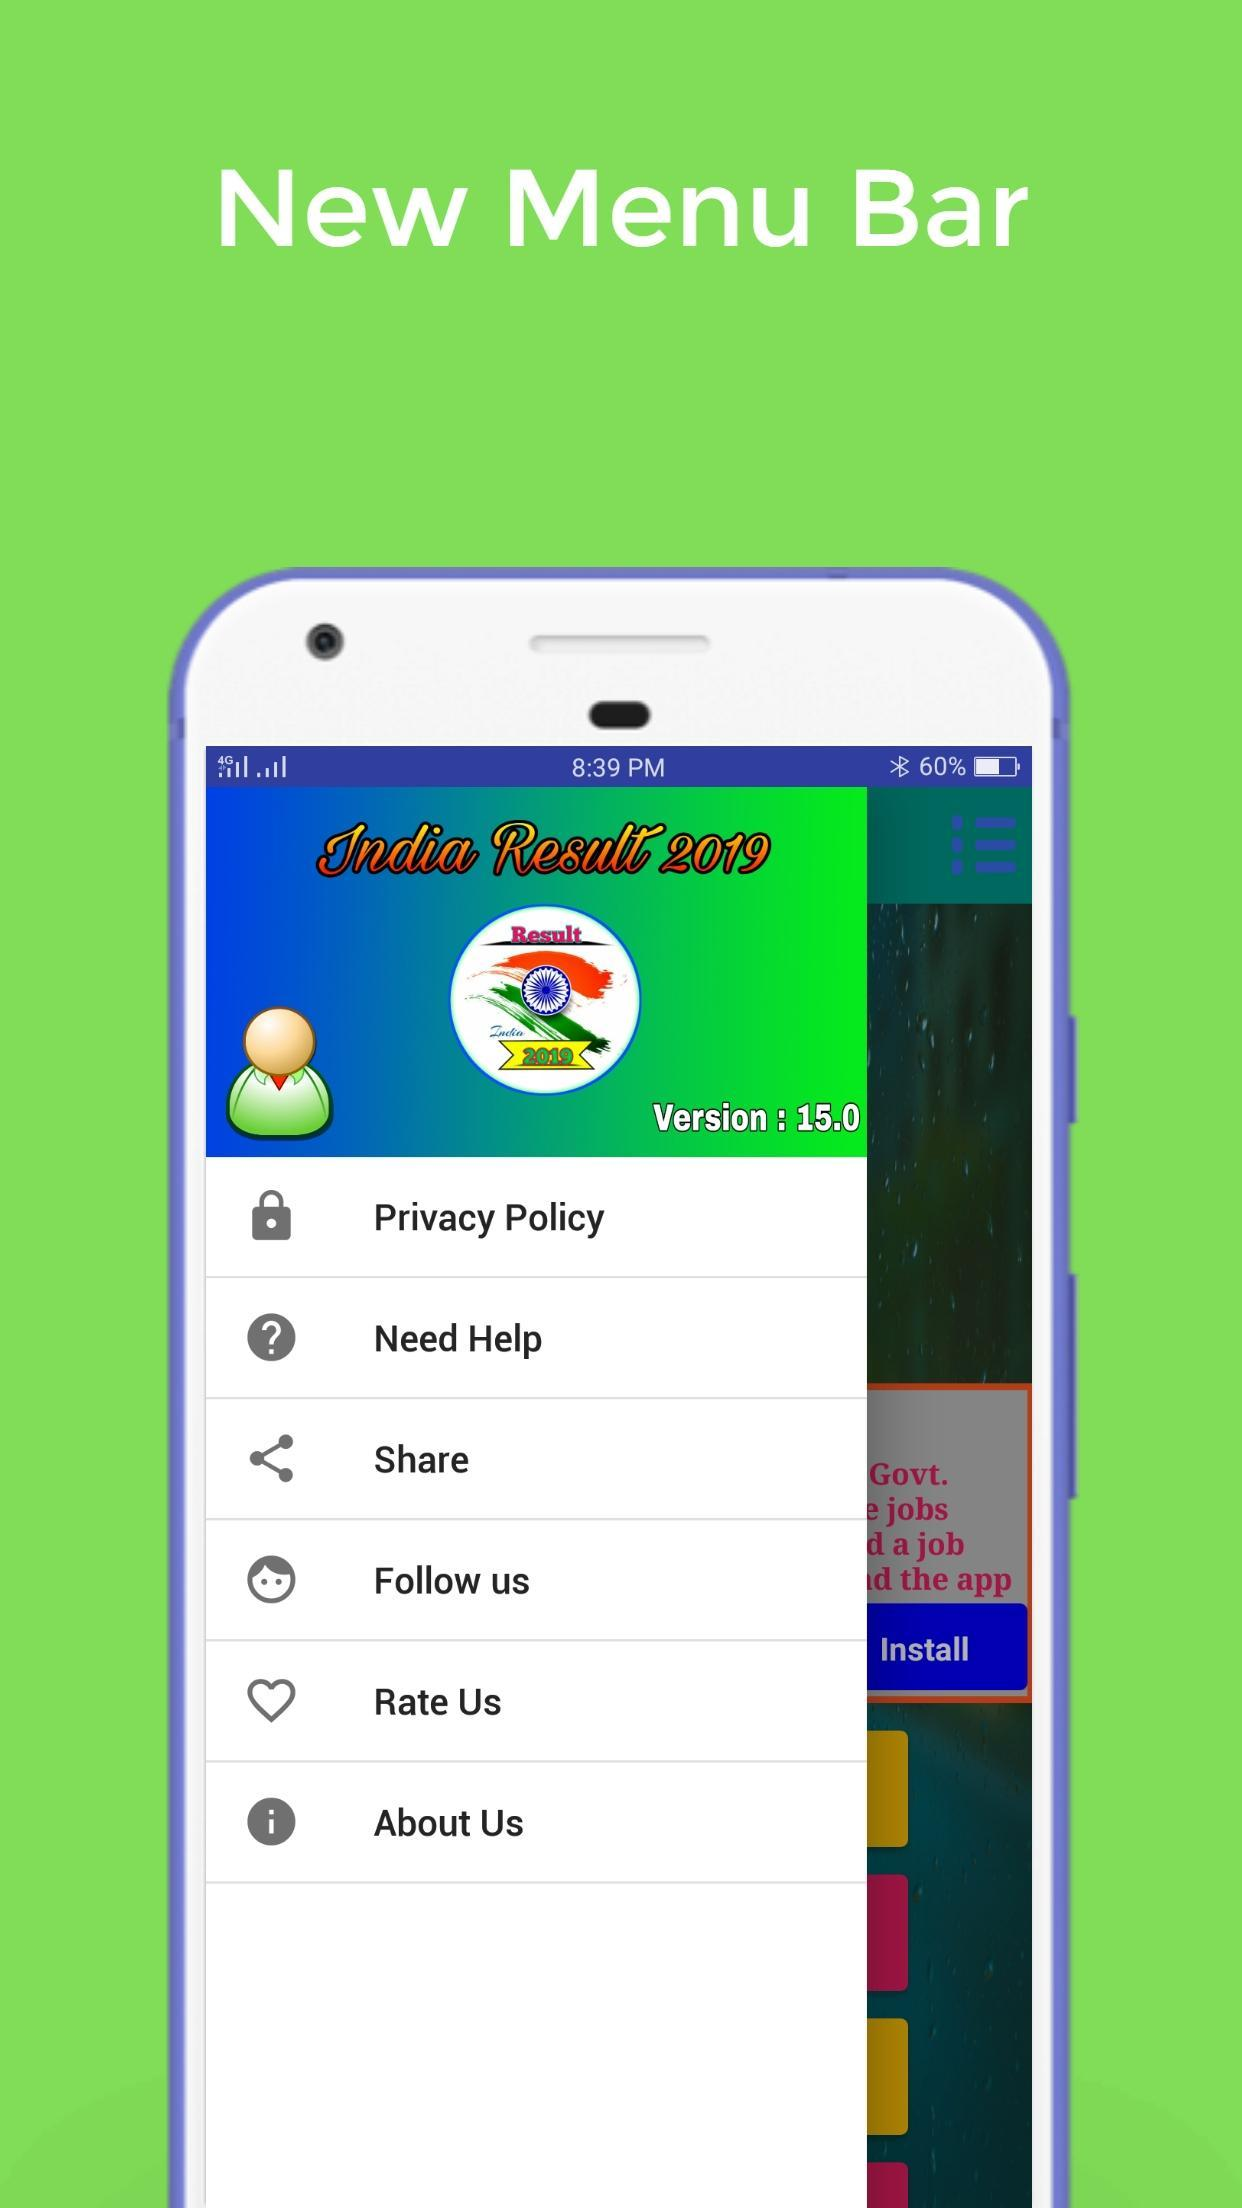 India Result 2019 for Android - APK Download